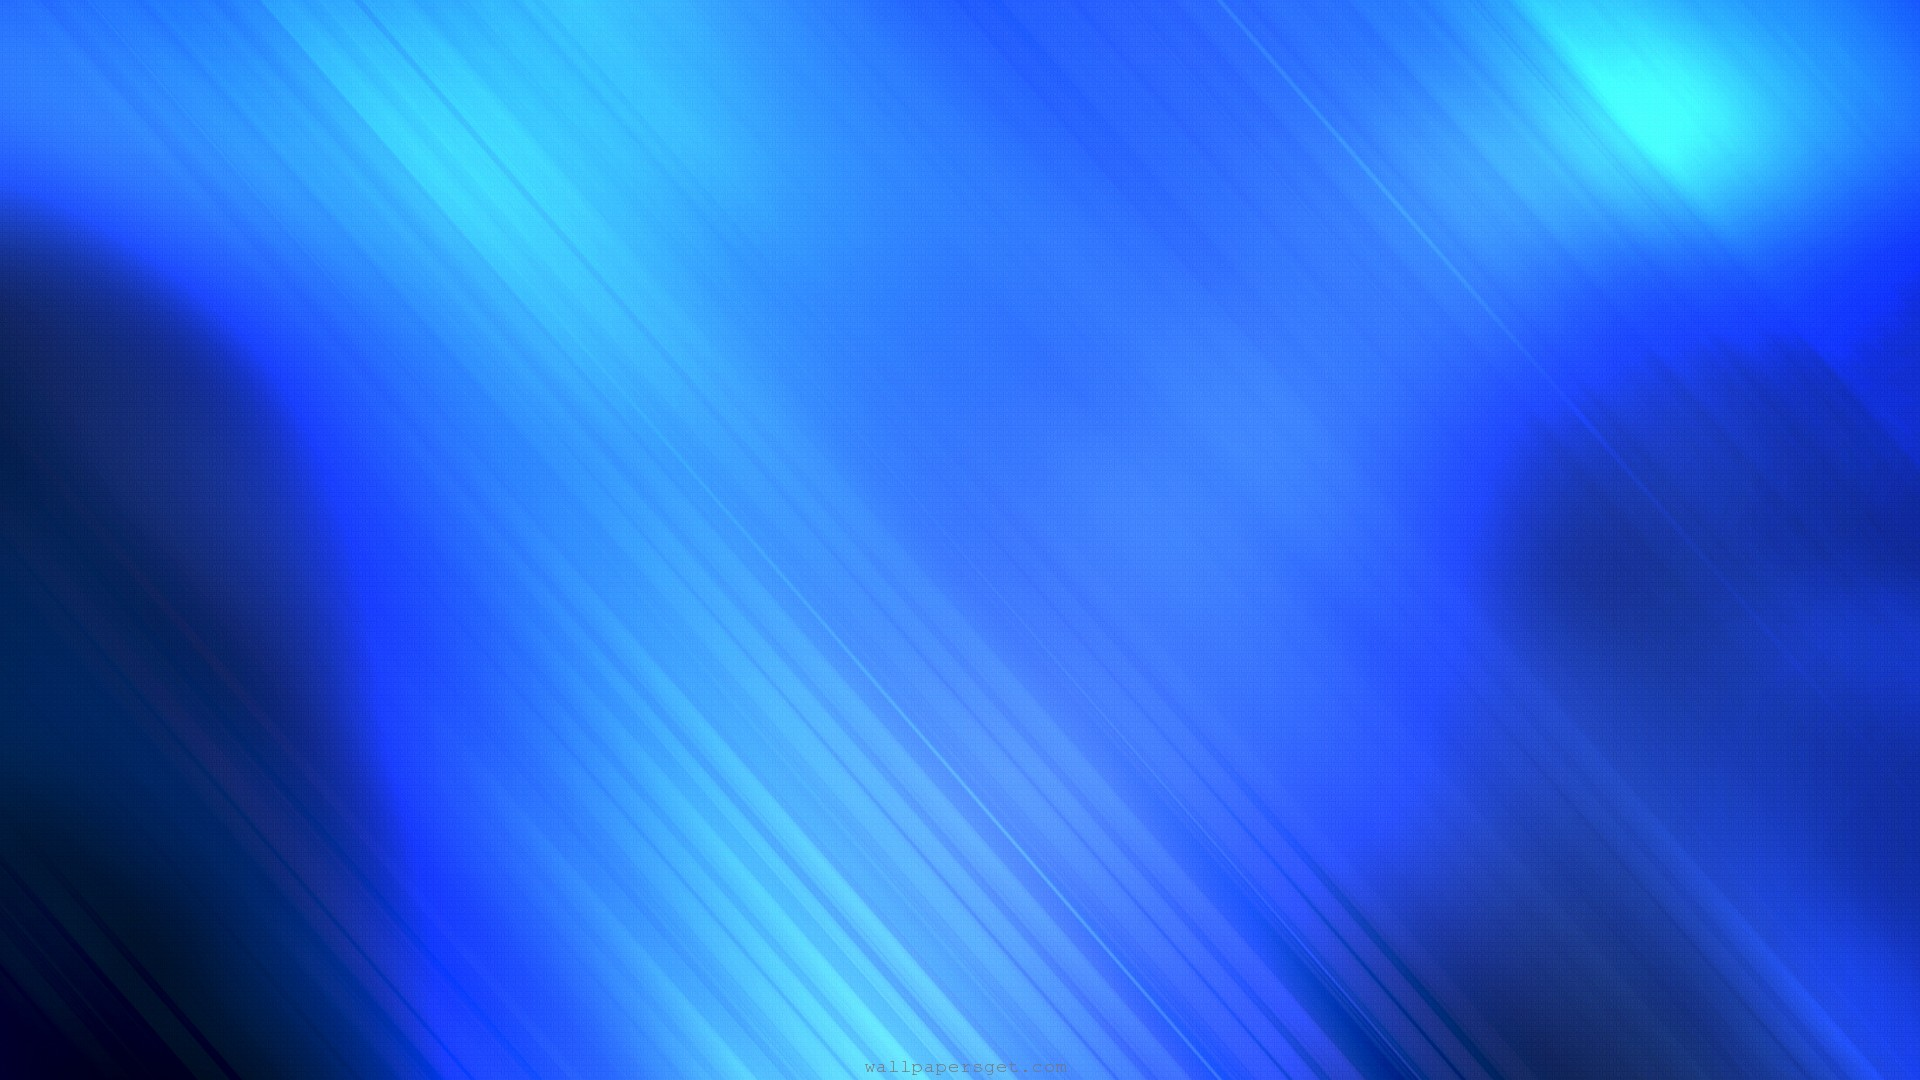 wallpaper hd dlwallhd blue - photo #17